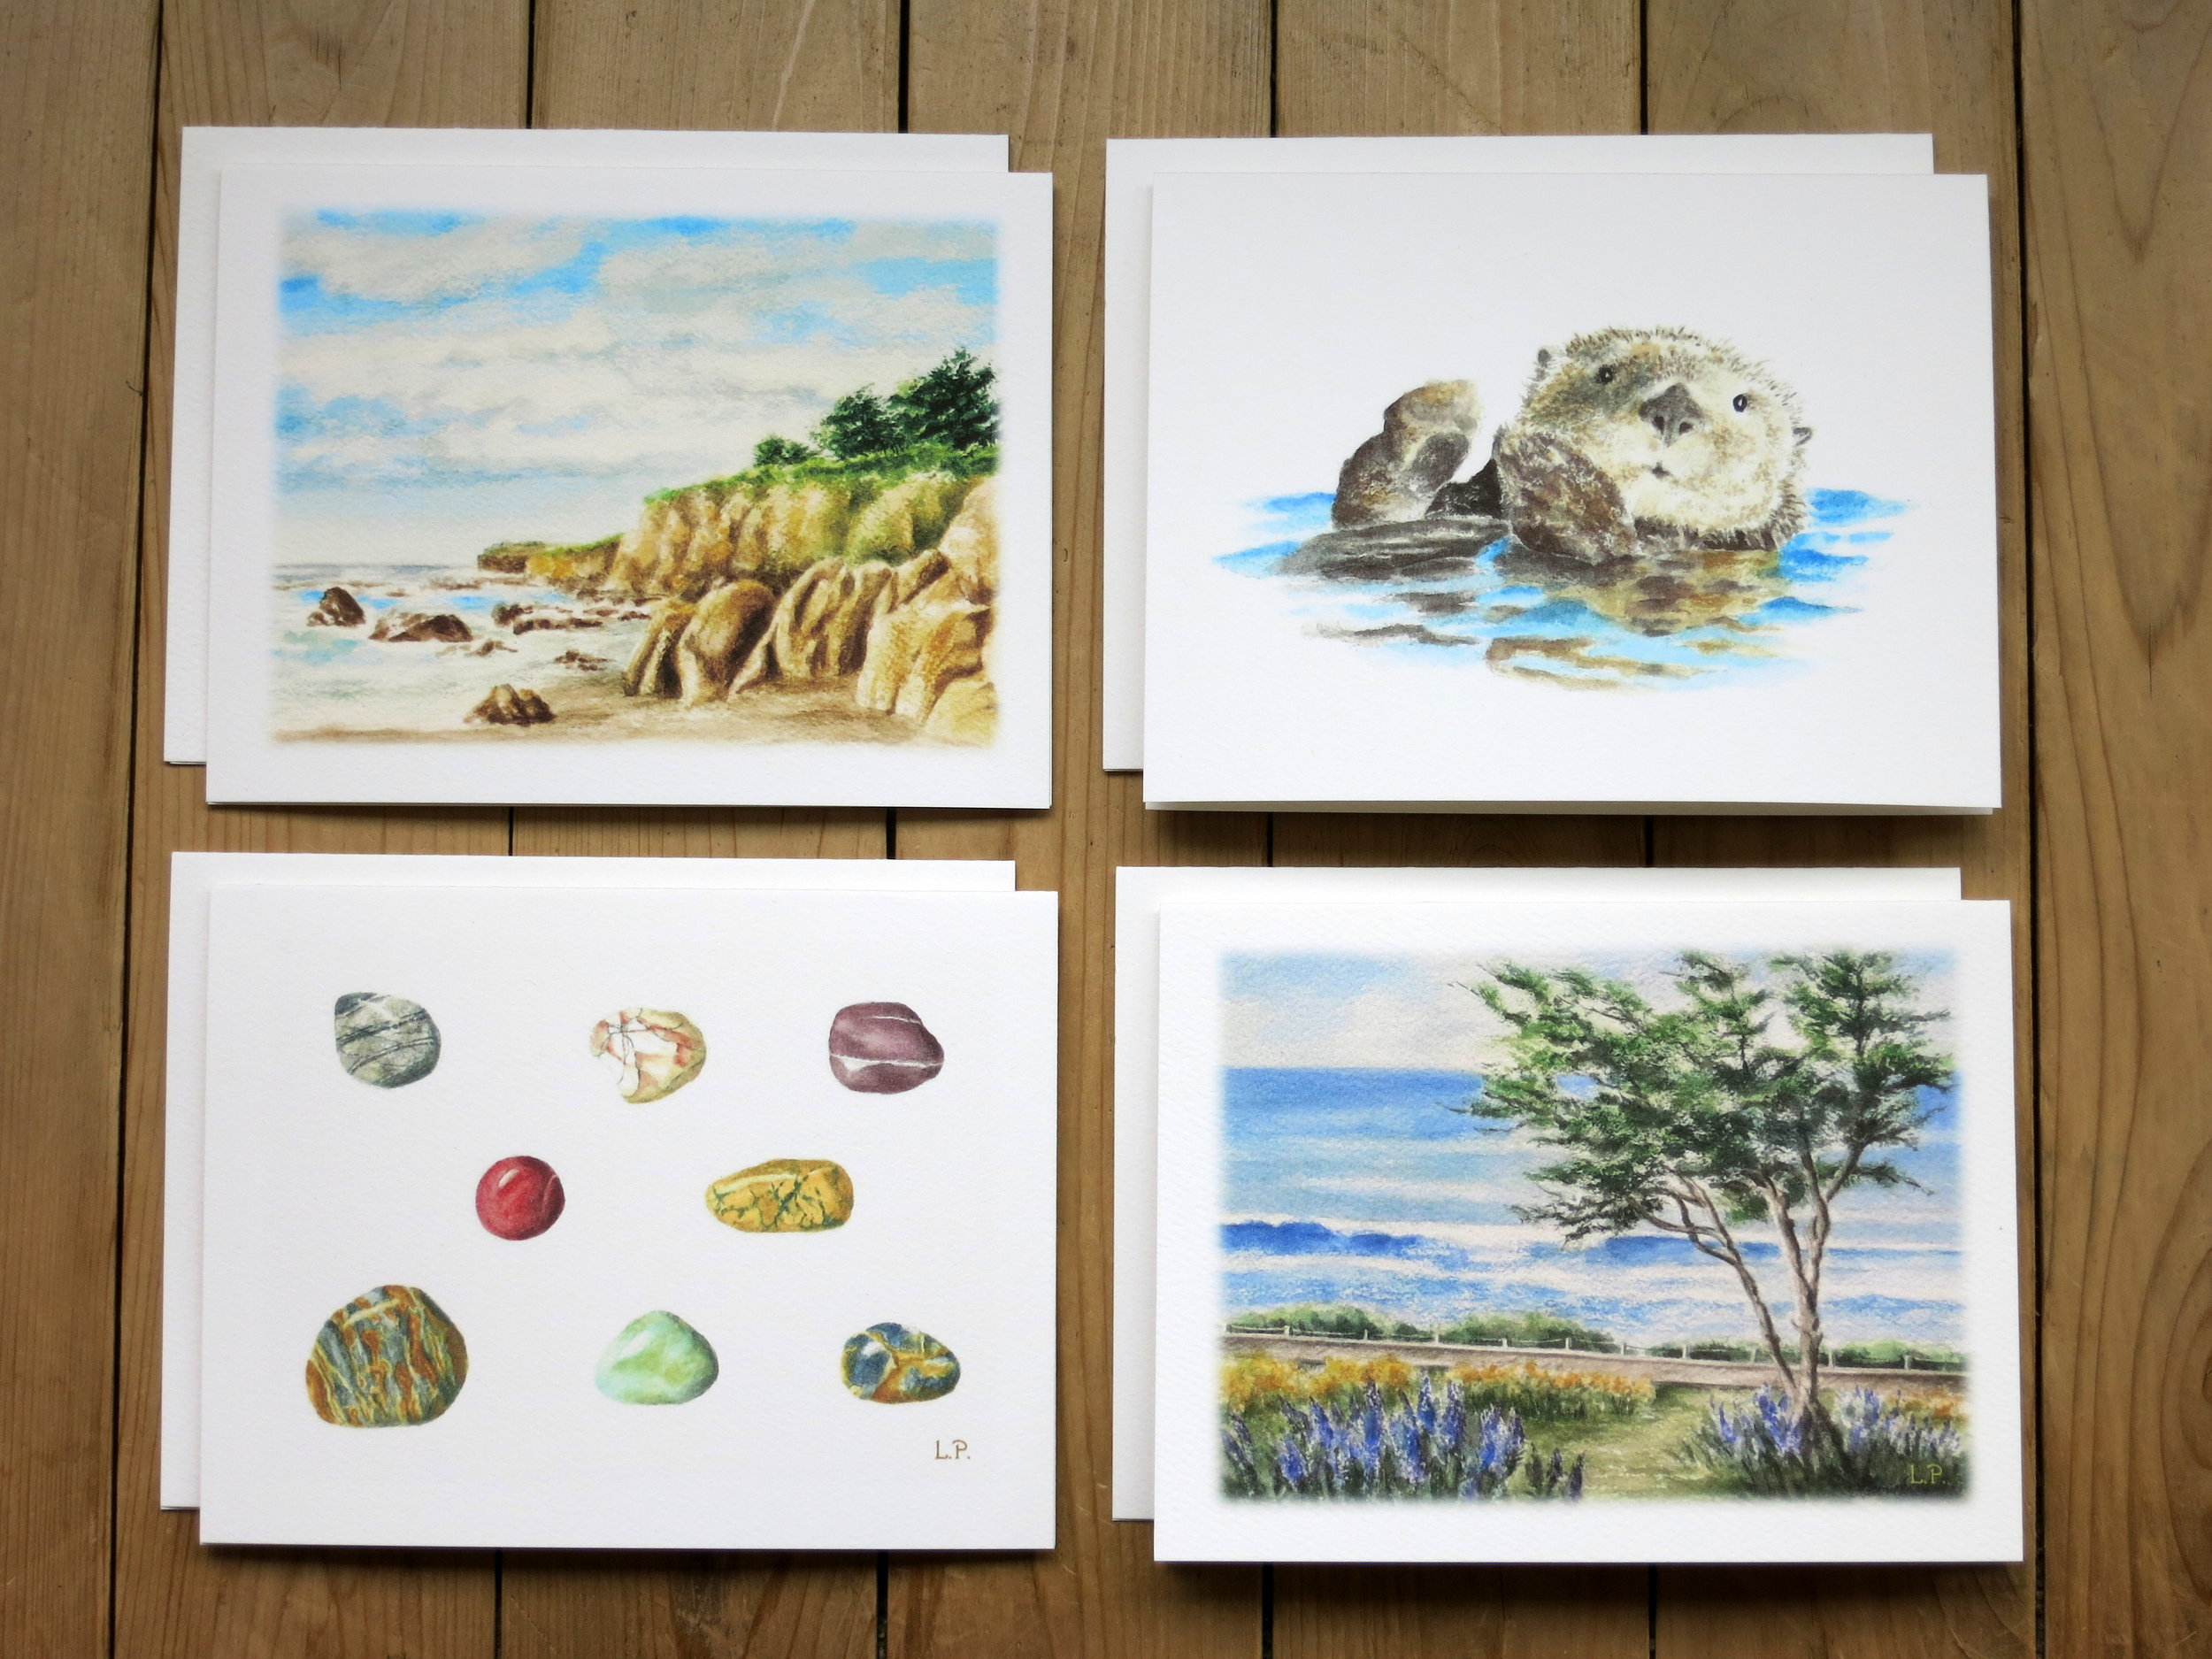 CENTRAL COAST MEMORIES NOTE CARDS 2 each of 4 designs - Blank inside